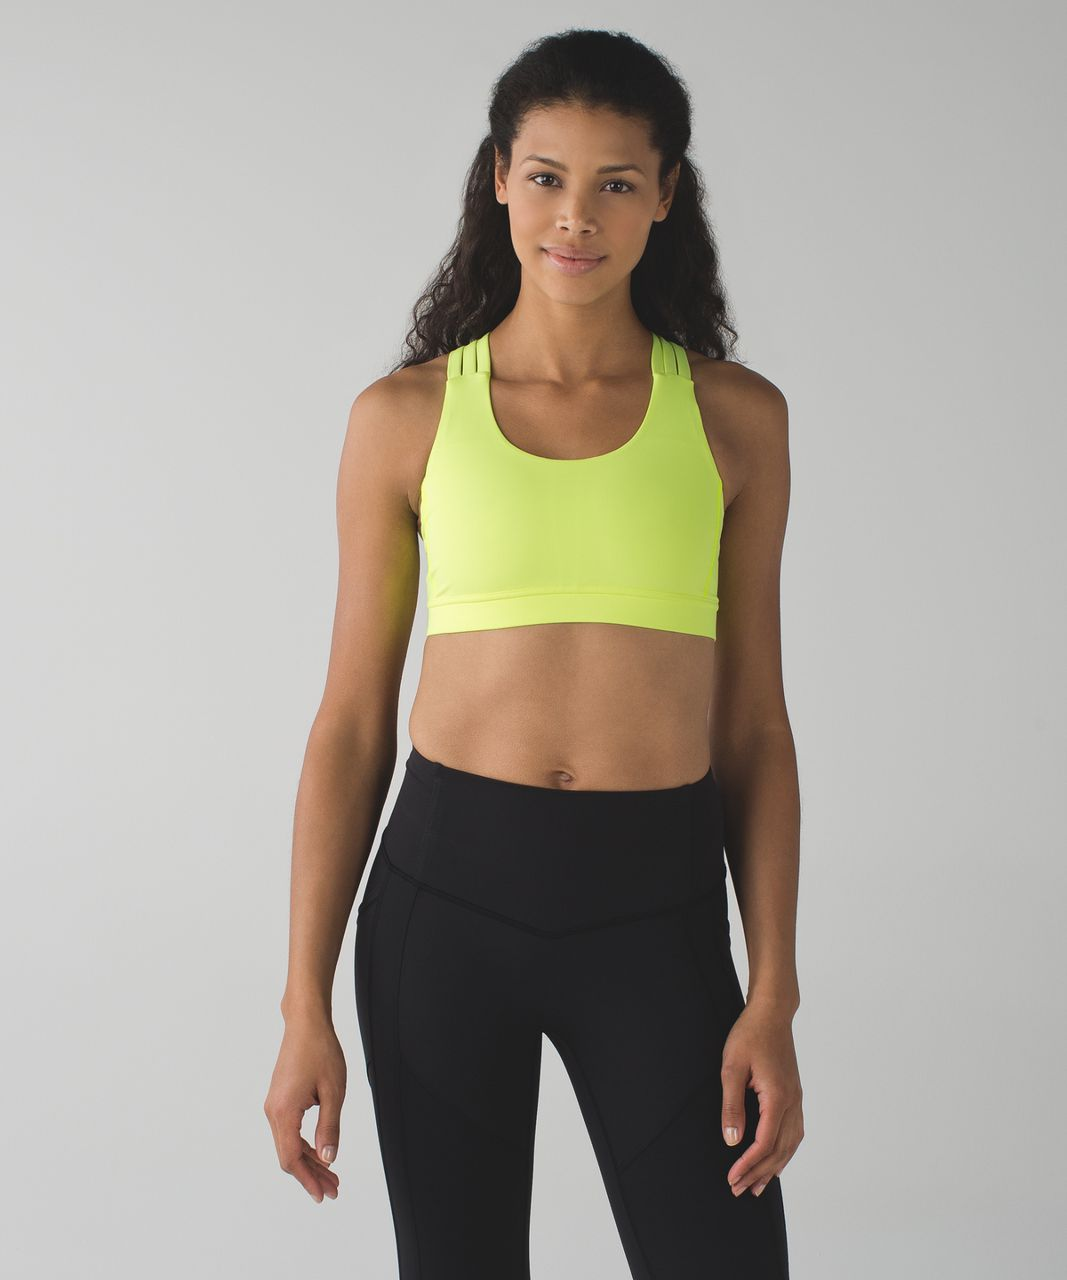 Lululemon All Sport Bra 3 Strap - Ray